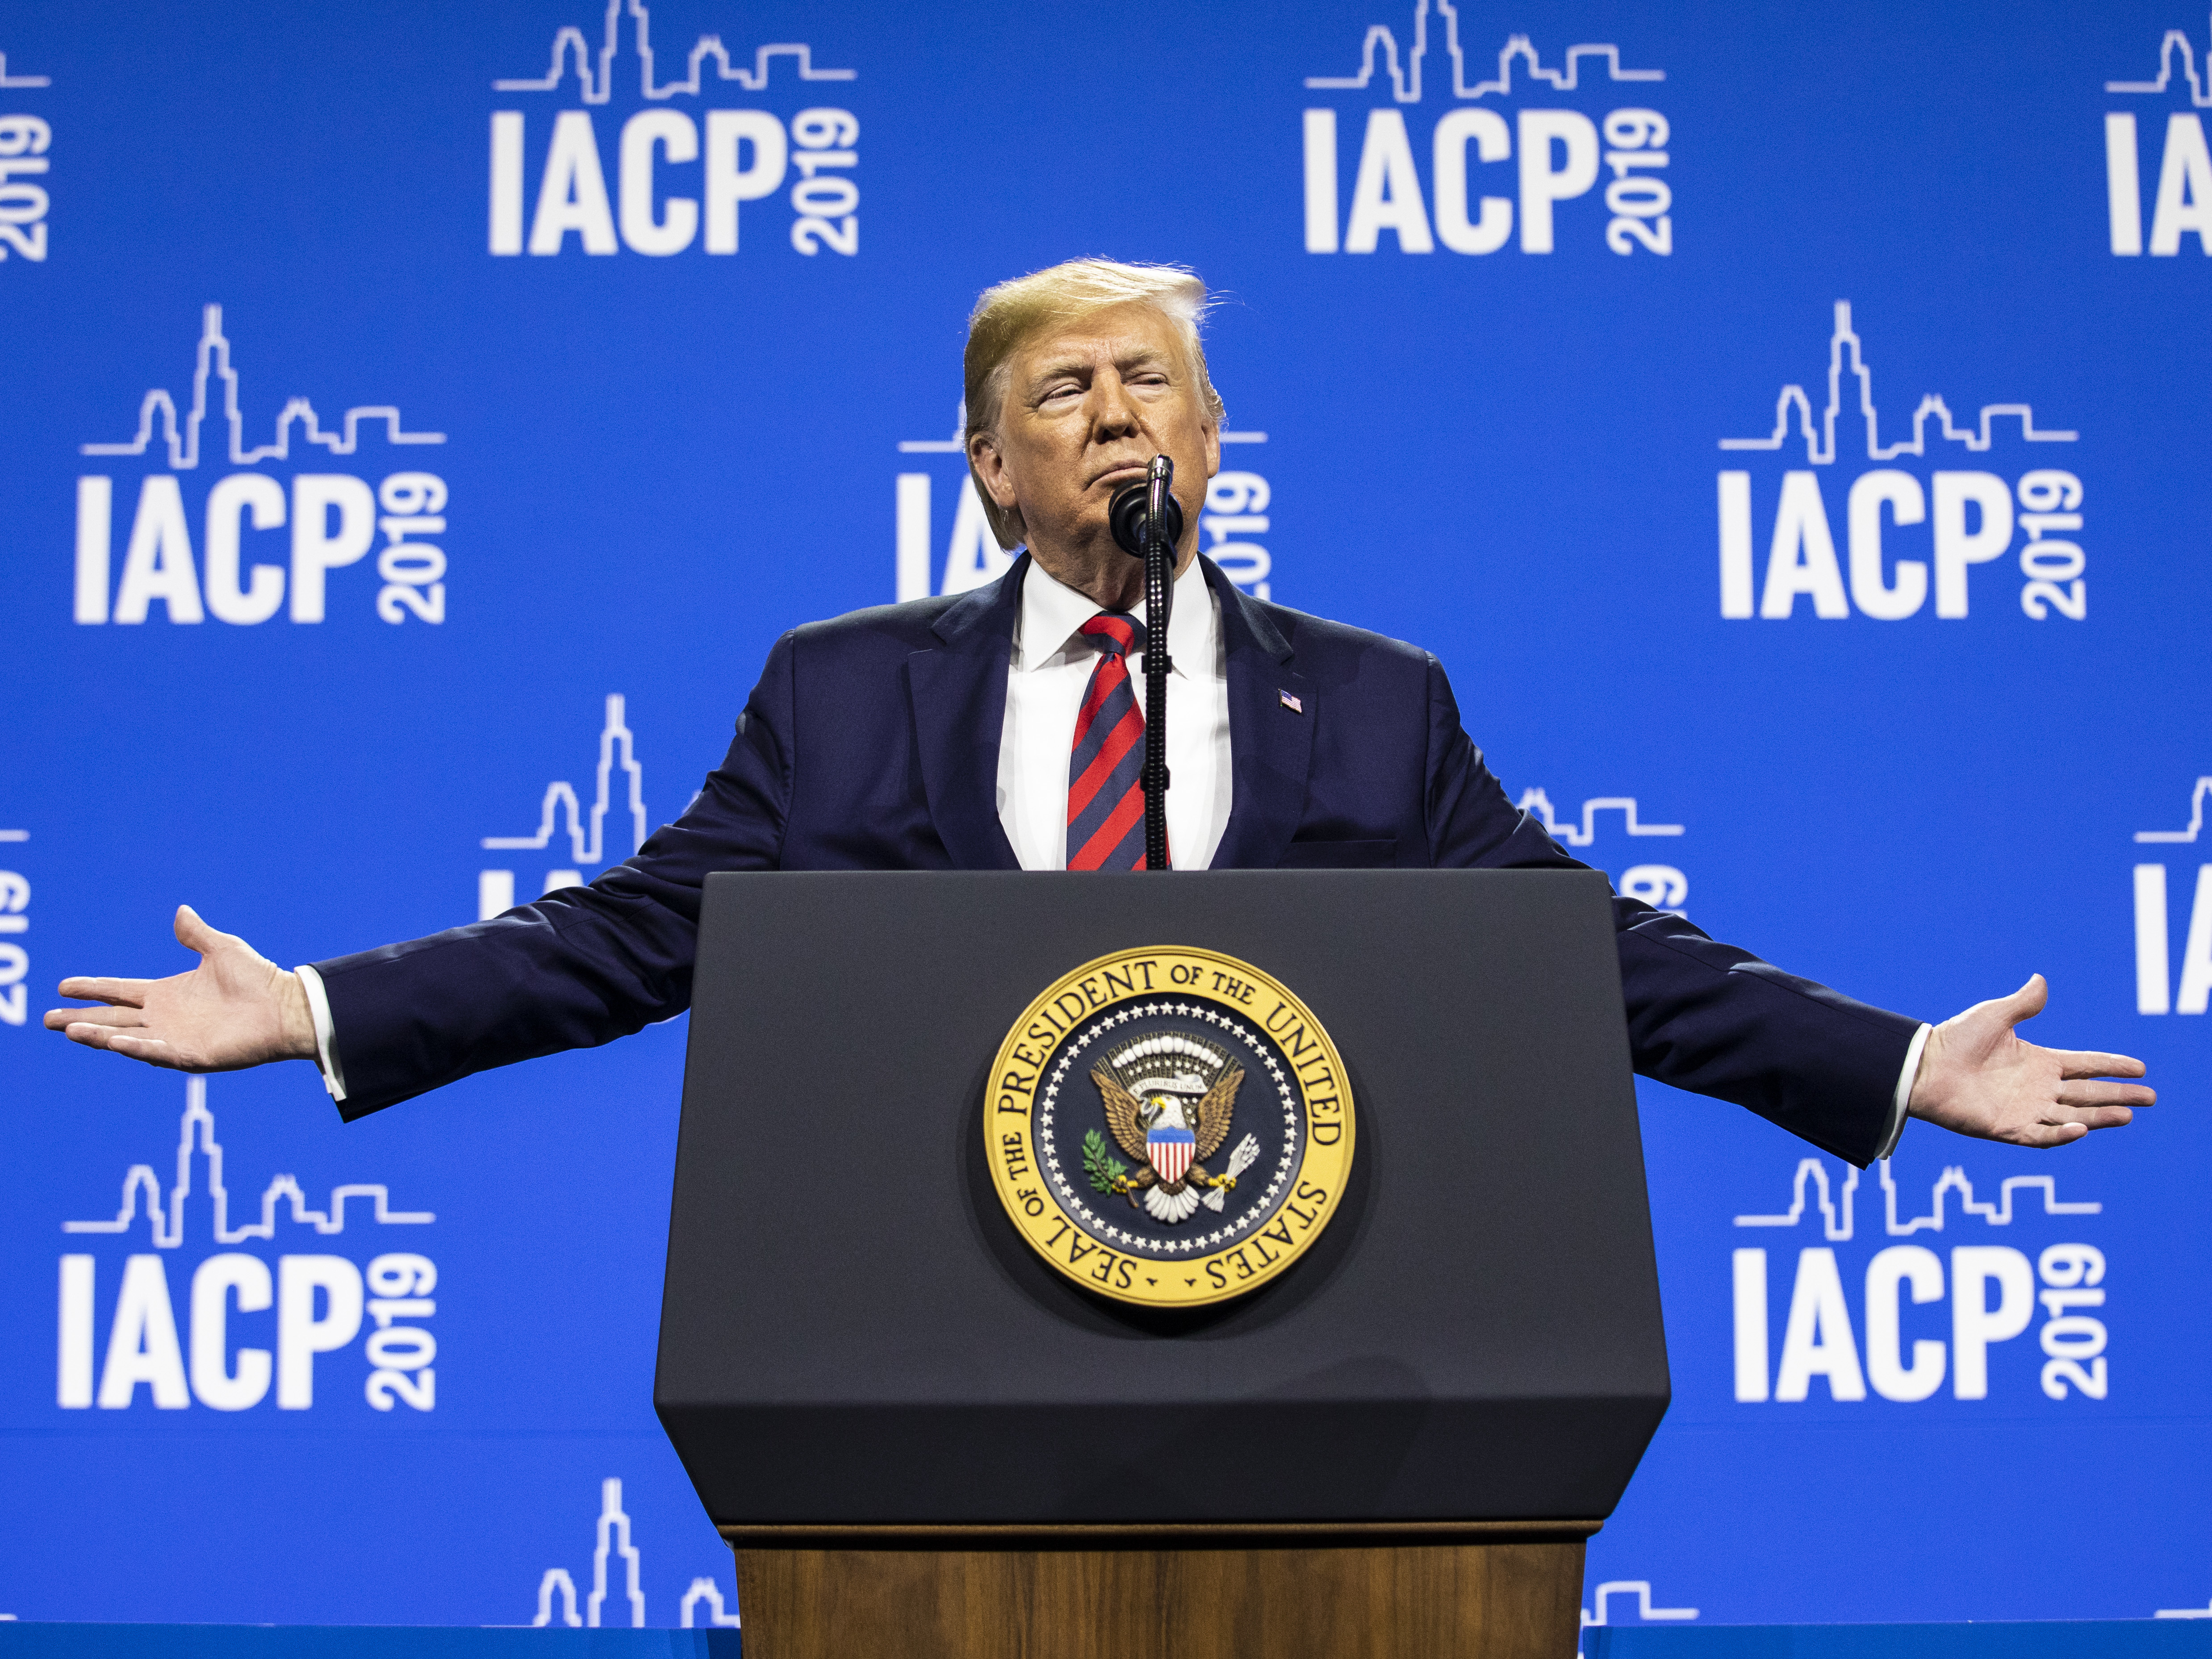 President Donald Trump speaks at the International Association of Chiefs of Police convention at McCormick Place on Monday.